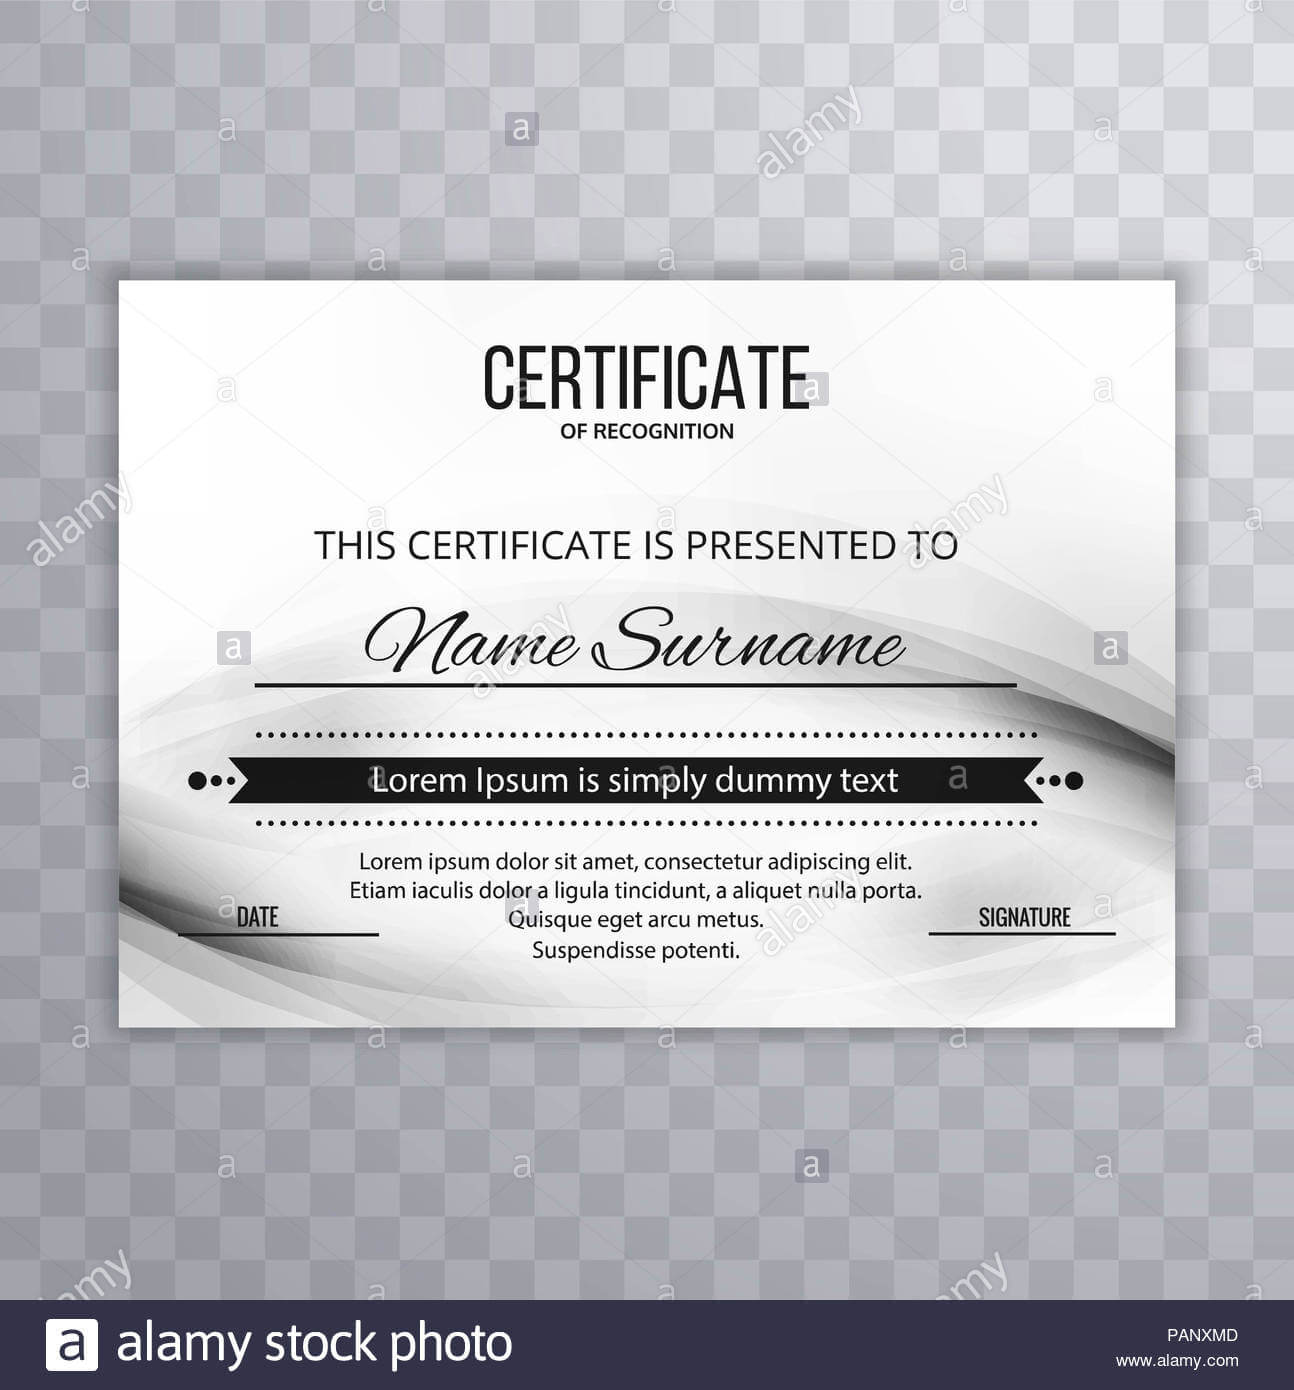 Modern Certificate Template Design Stock Photo: 213152925 with Borderless Certificate Templates